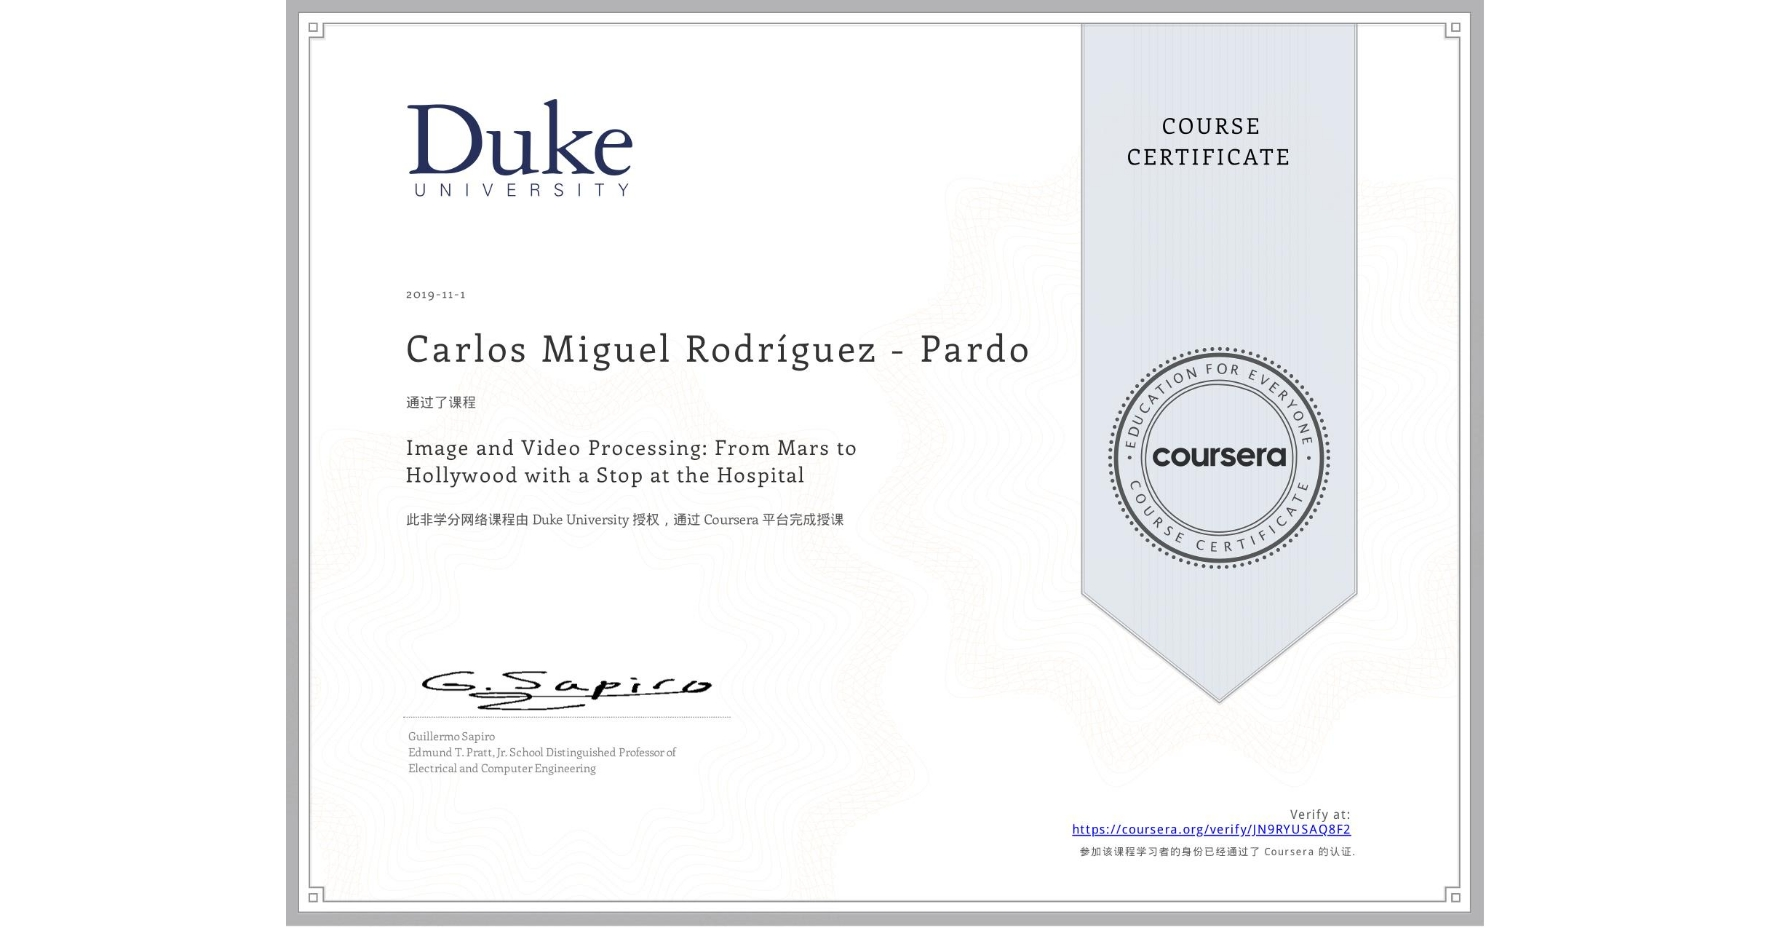 View certificate for Carlos Miguel Rodríguez - Pardo, Image and Video Processing: From Mars to Hollywood with a Stop at the Hospital, an online non-credit course authorized by Duke University and offered through Coursera